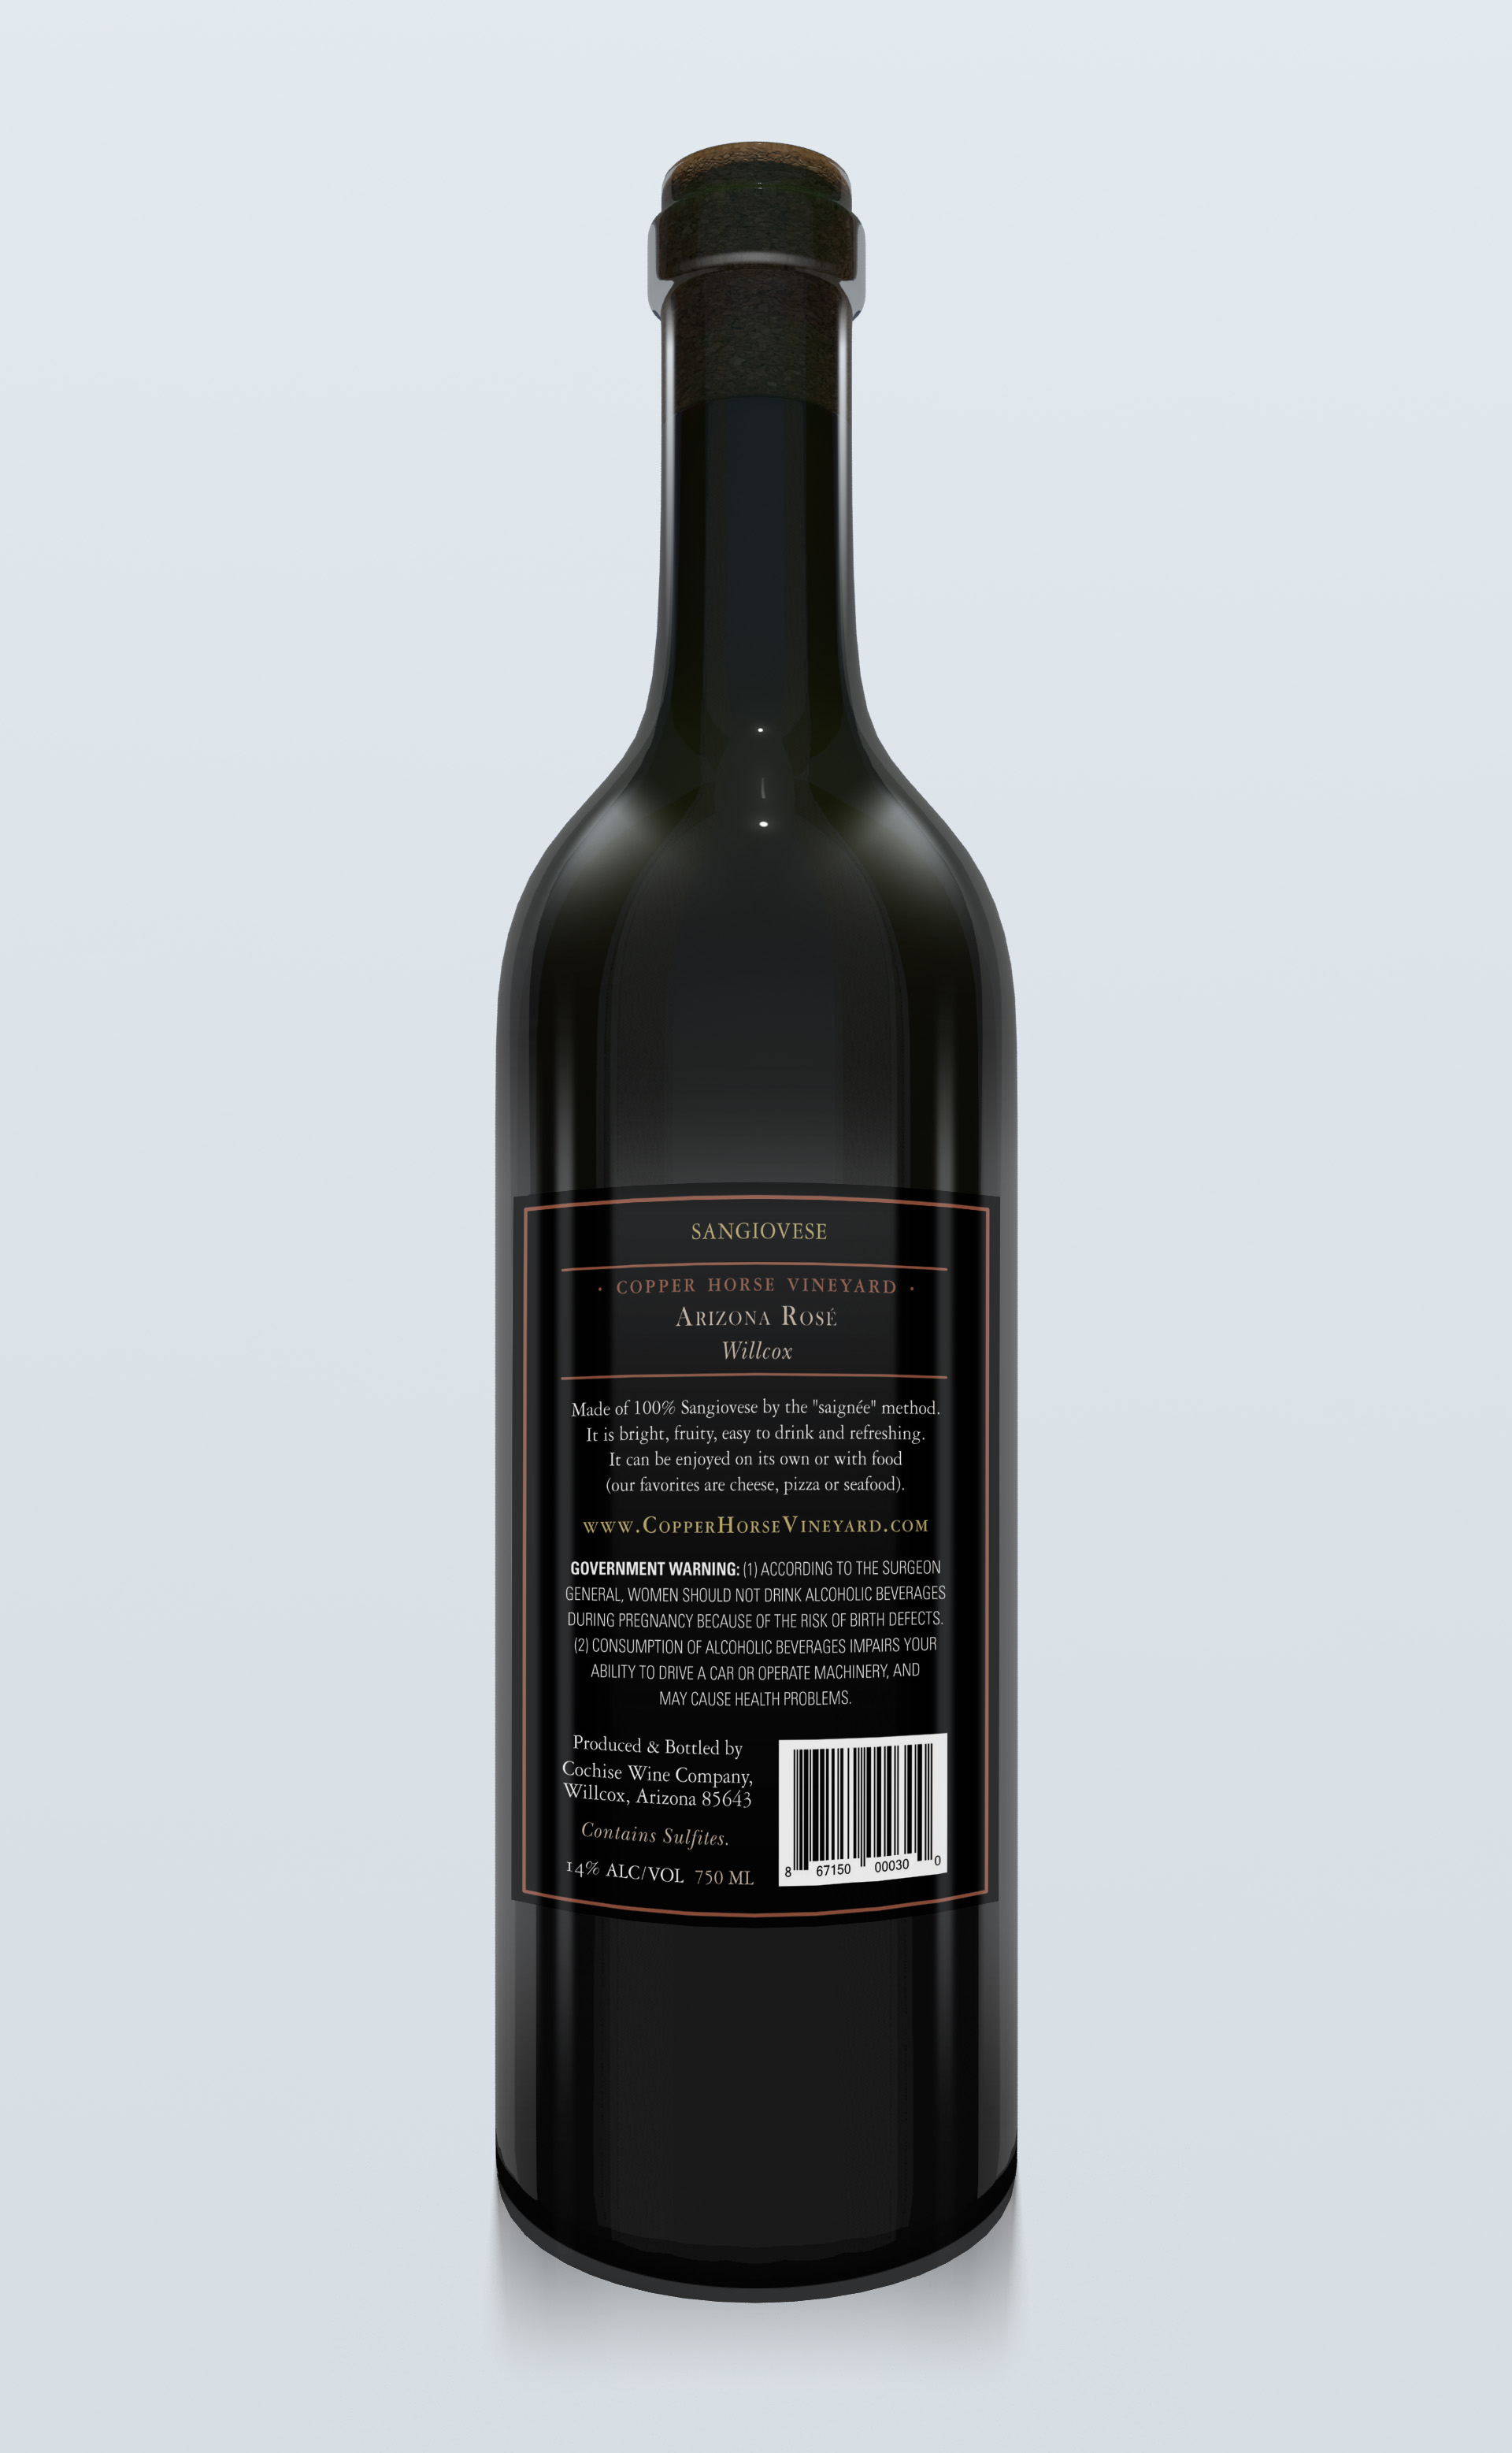 Mock up of the back label on the bottle